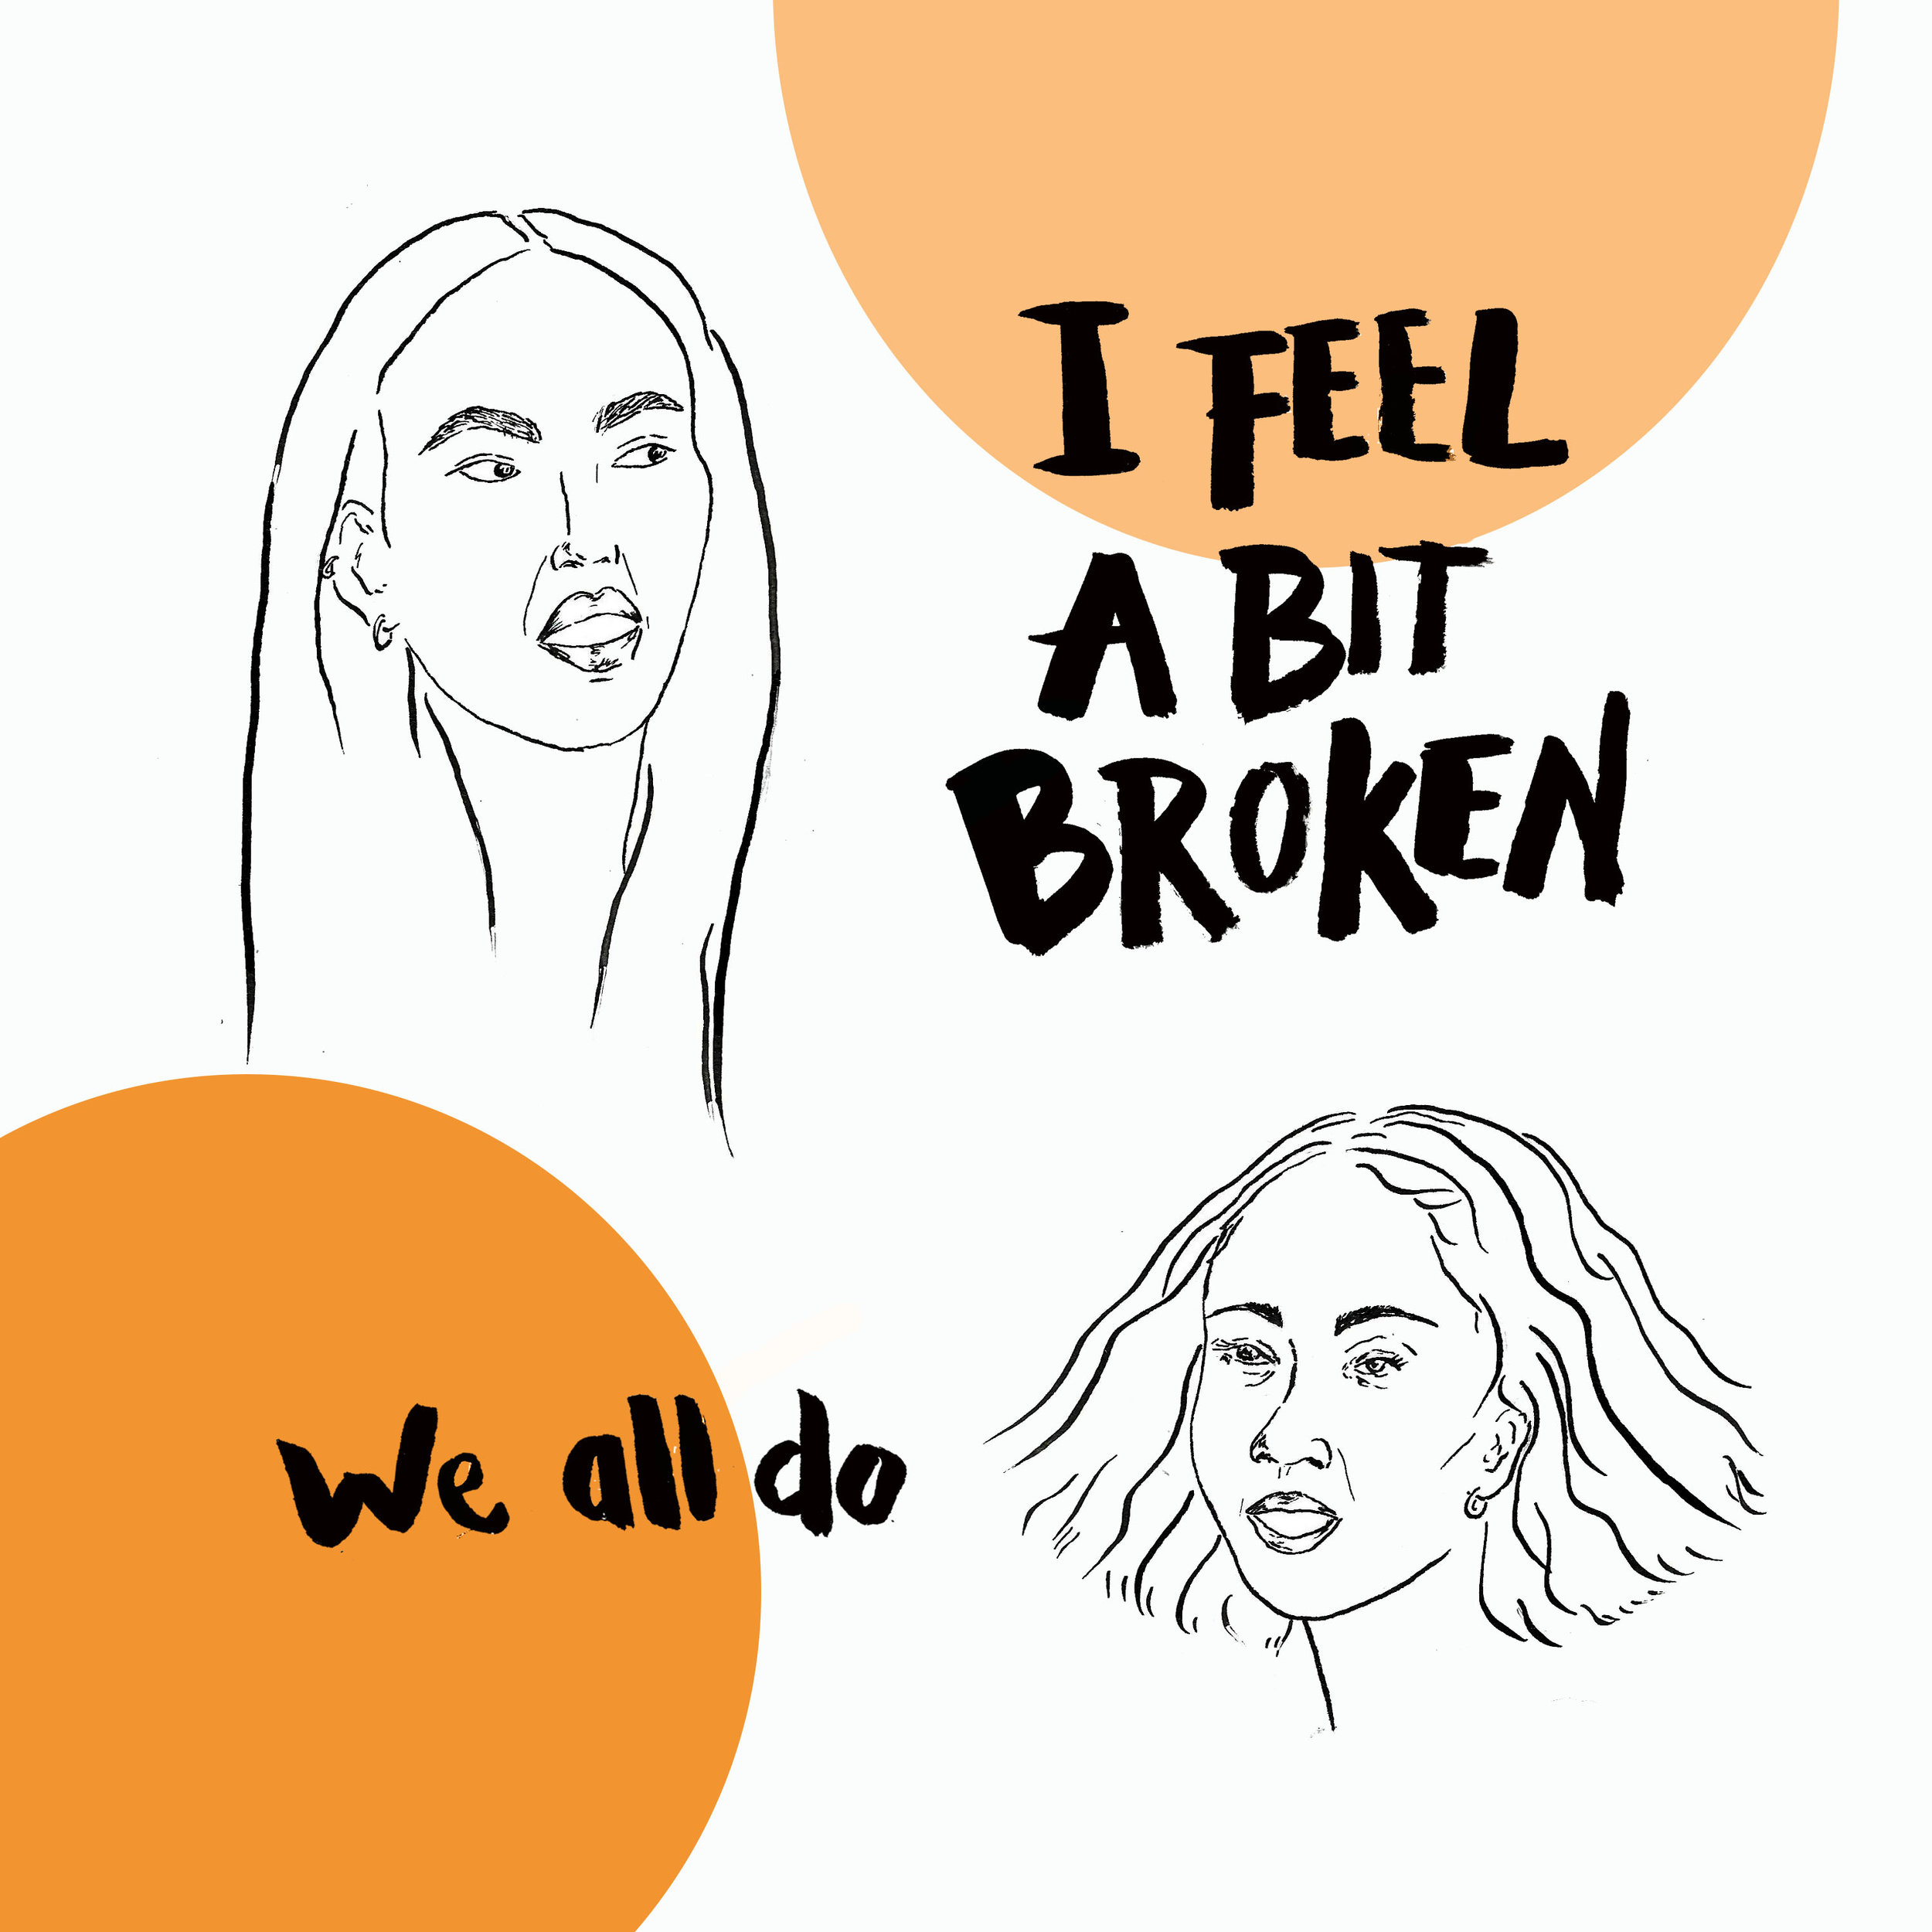 I feel a bit broken. we all do. speaking out about miscarriage by awesome mama illustration www.awesomemamaillustration.com